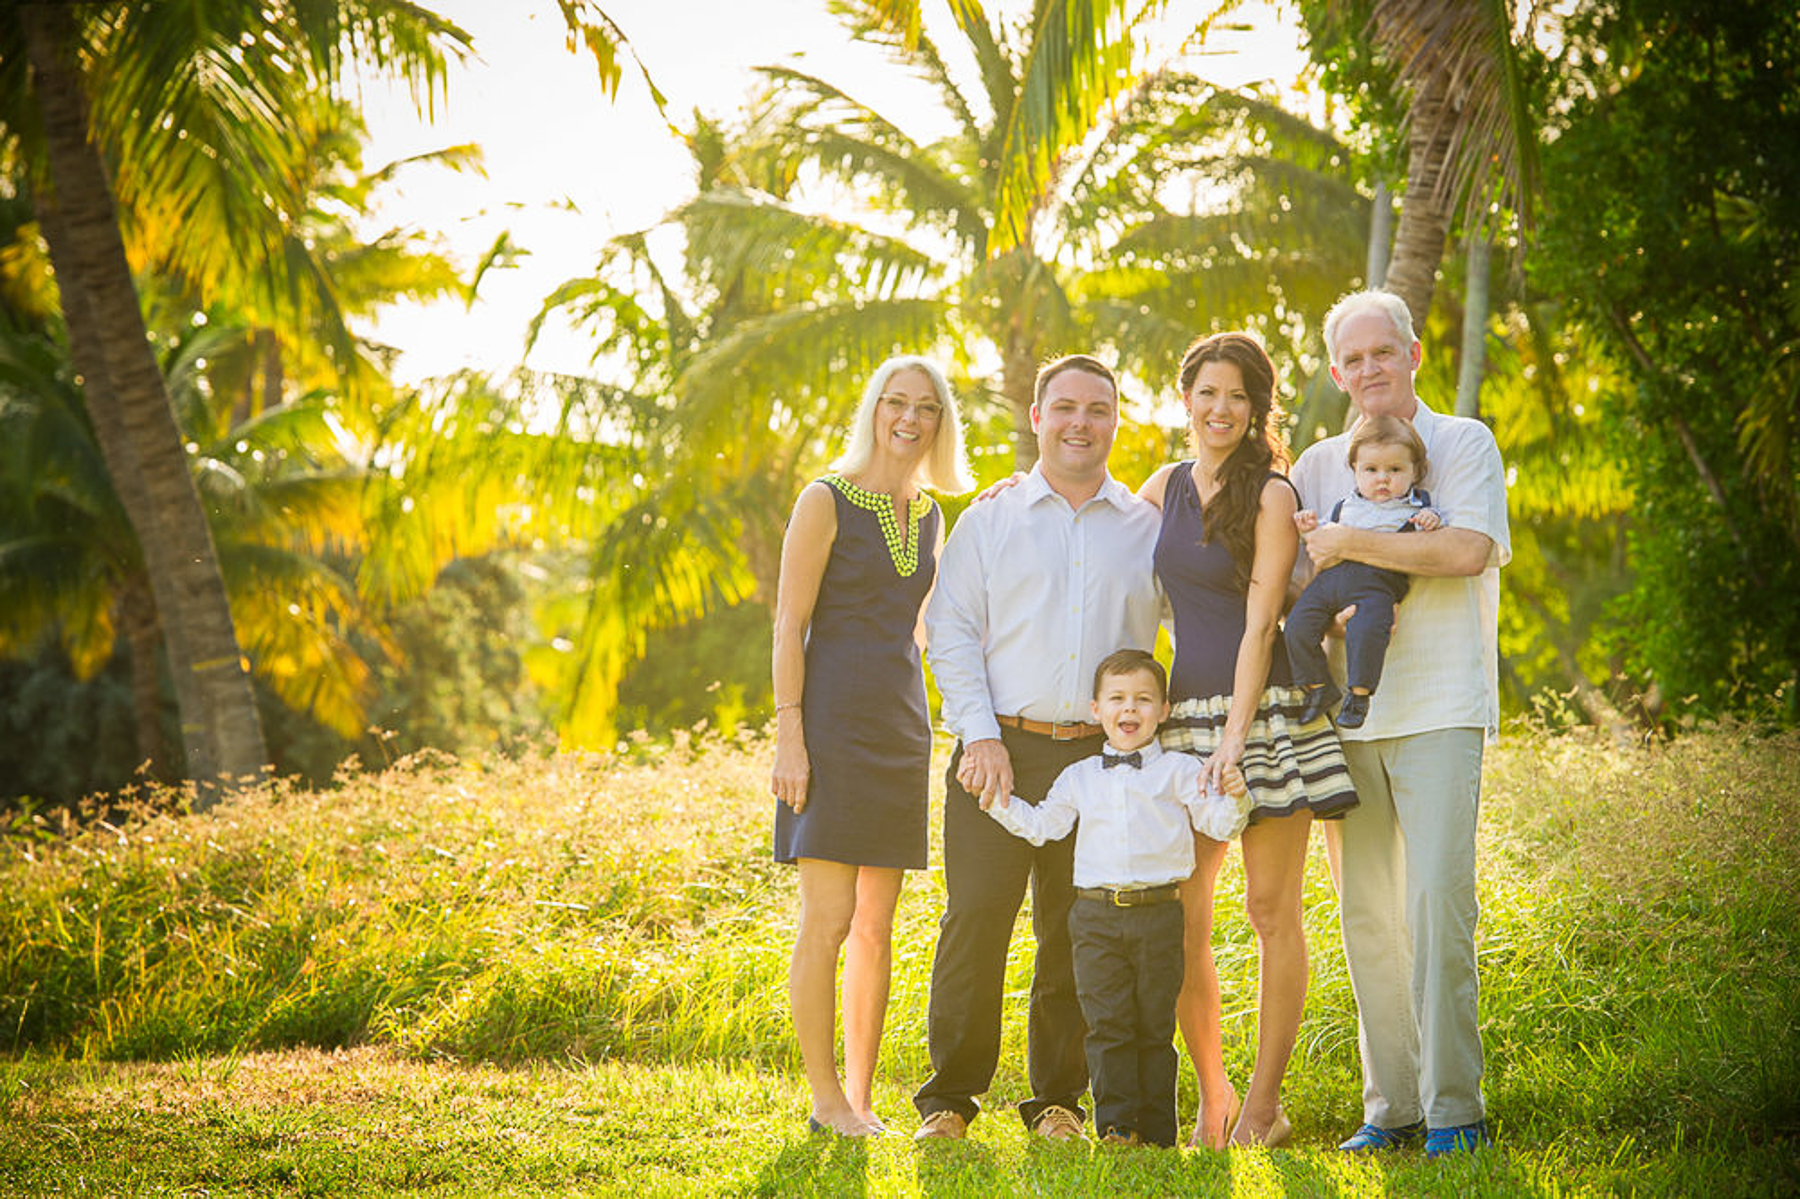 22_ManoloDoreste_InFocusStudios_Wedding_Family_Photography_Miami_MiamiPhotographer.jpg